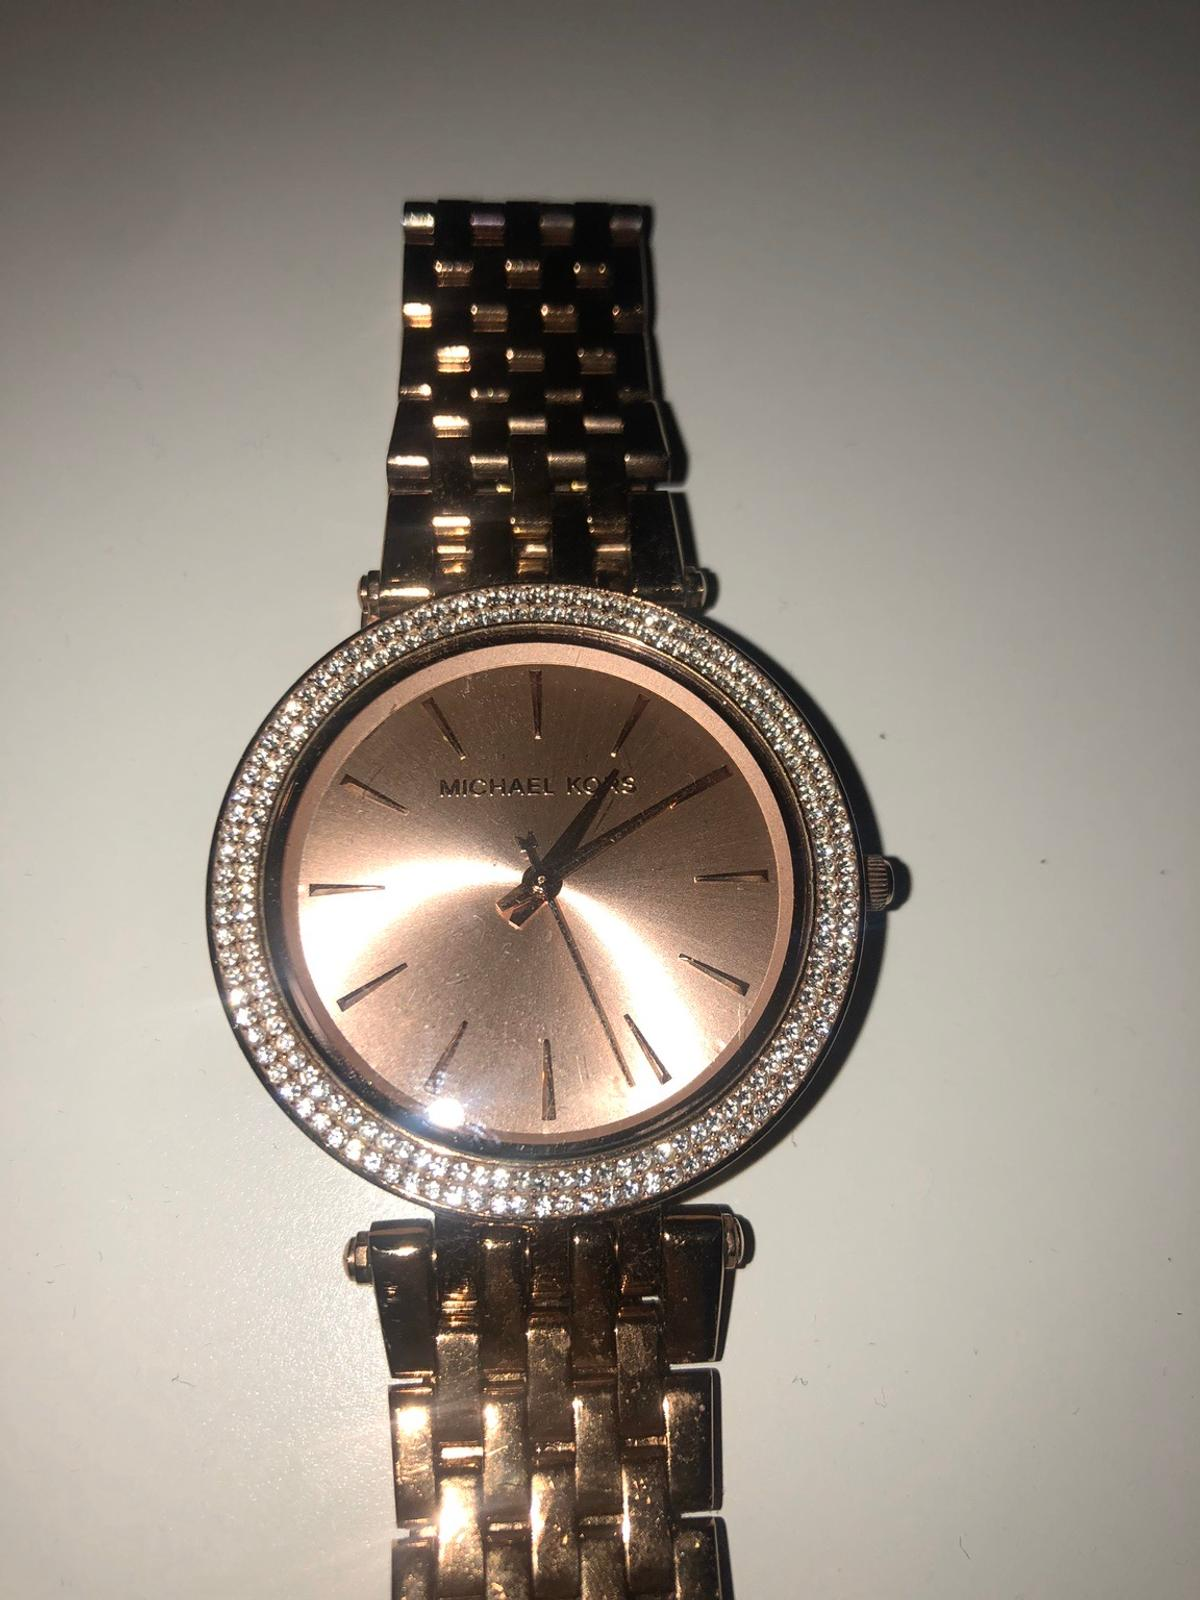 Genuine Michael Kors rose gold ladies watch in good condition. No box and battery needs replacing.